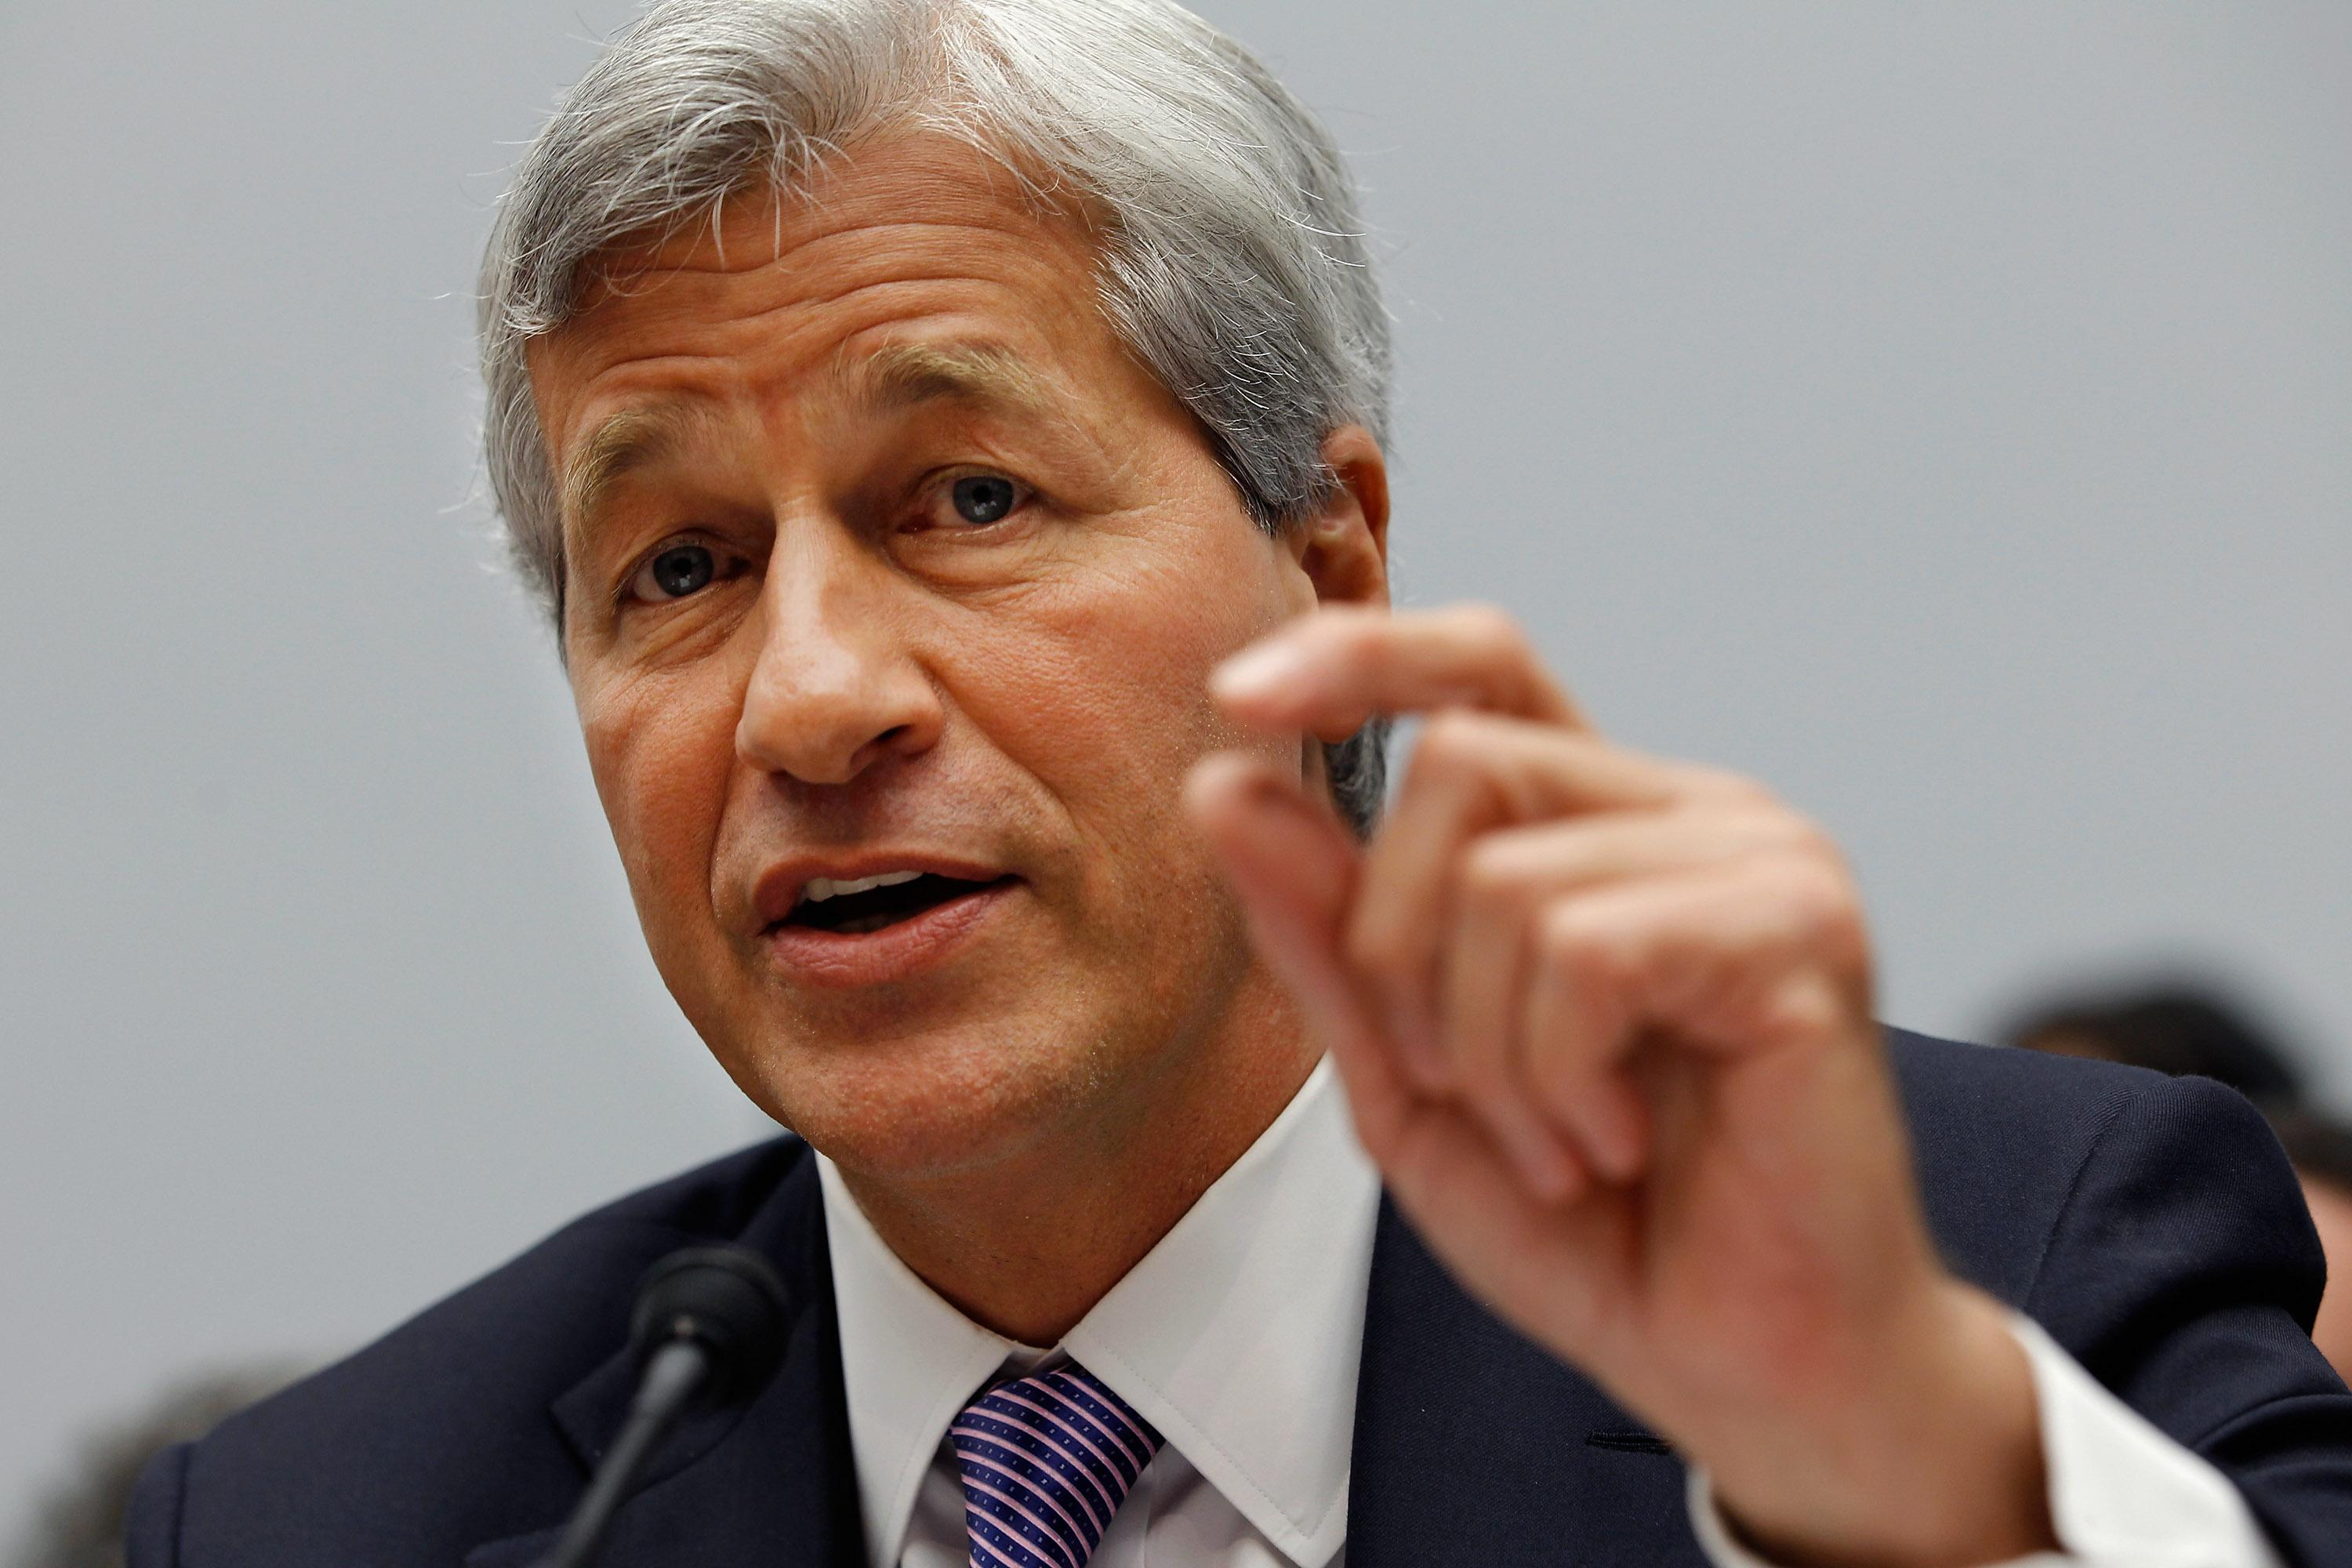 This image depicts [Jamie] Dimon